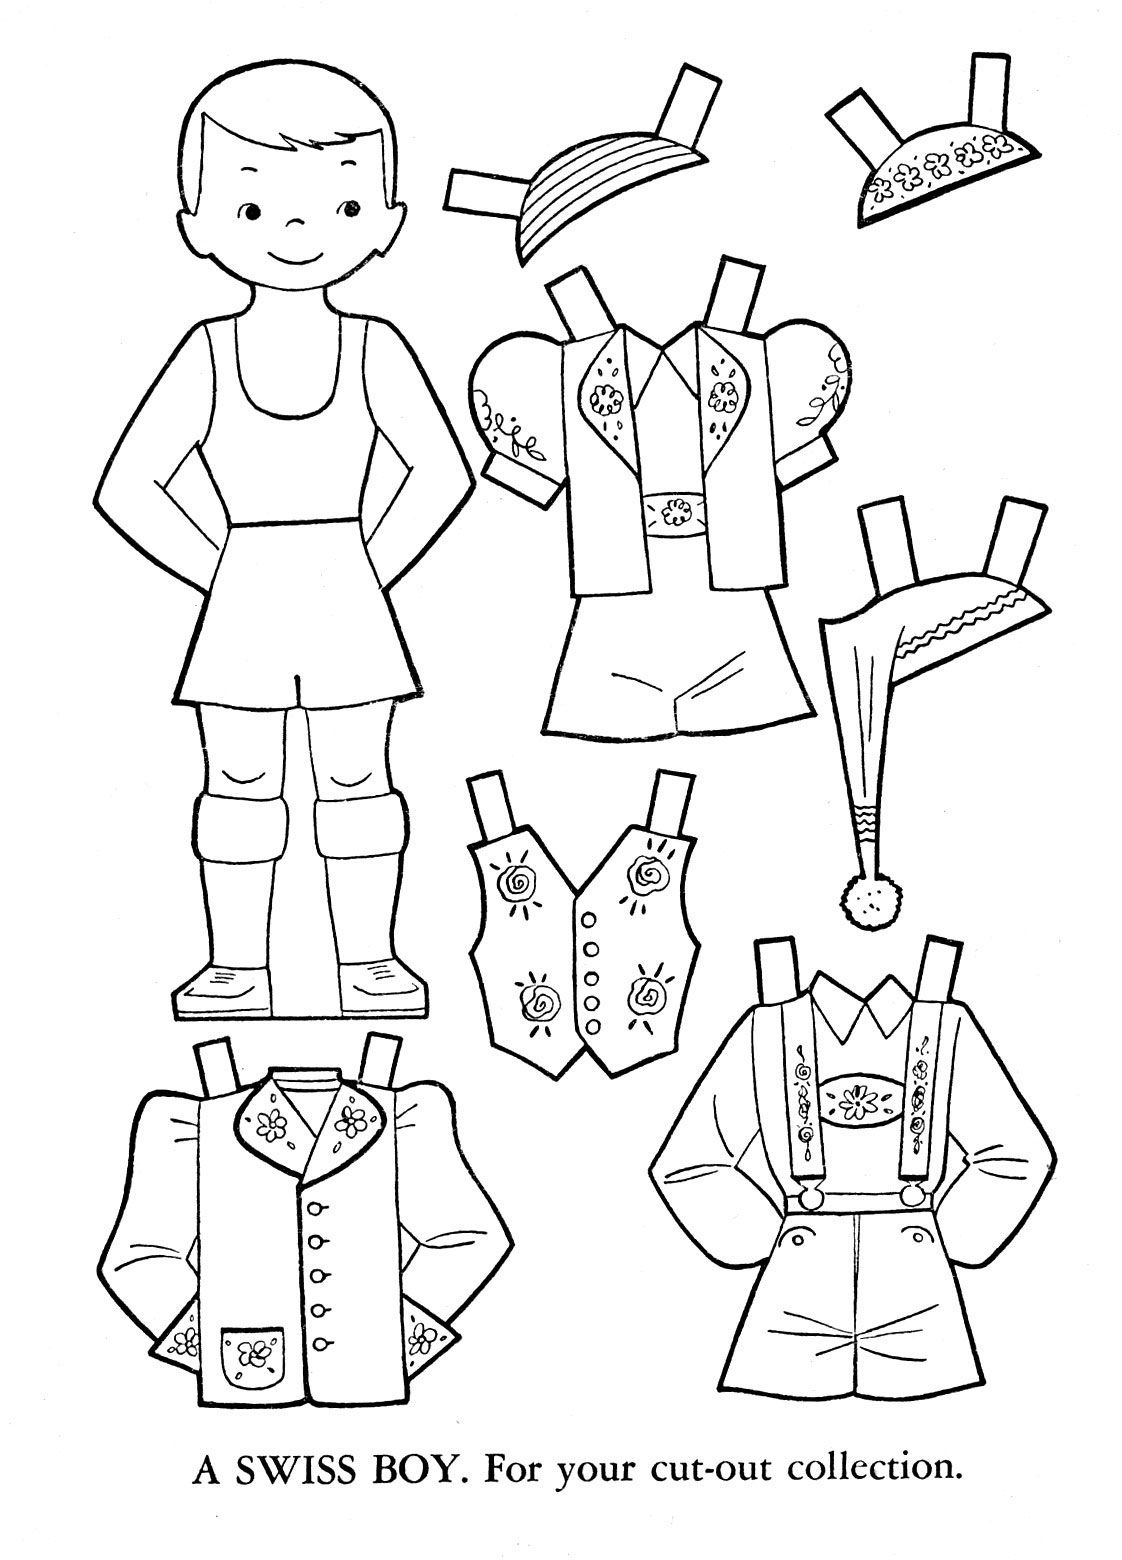 Outlines Of Dress Up Dolls Different Colountries | Paper Doll Black - Free Printable Paper Dolls From Around The World